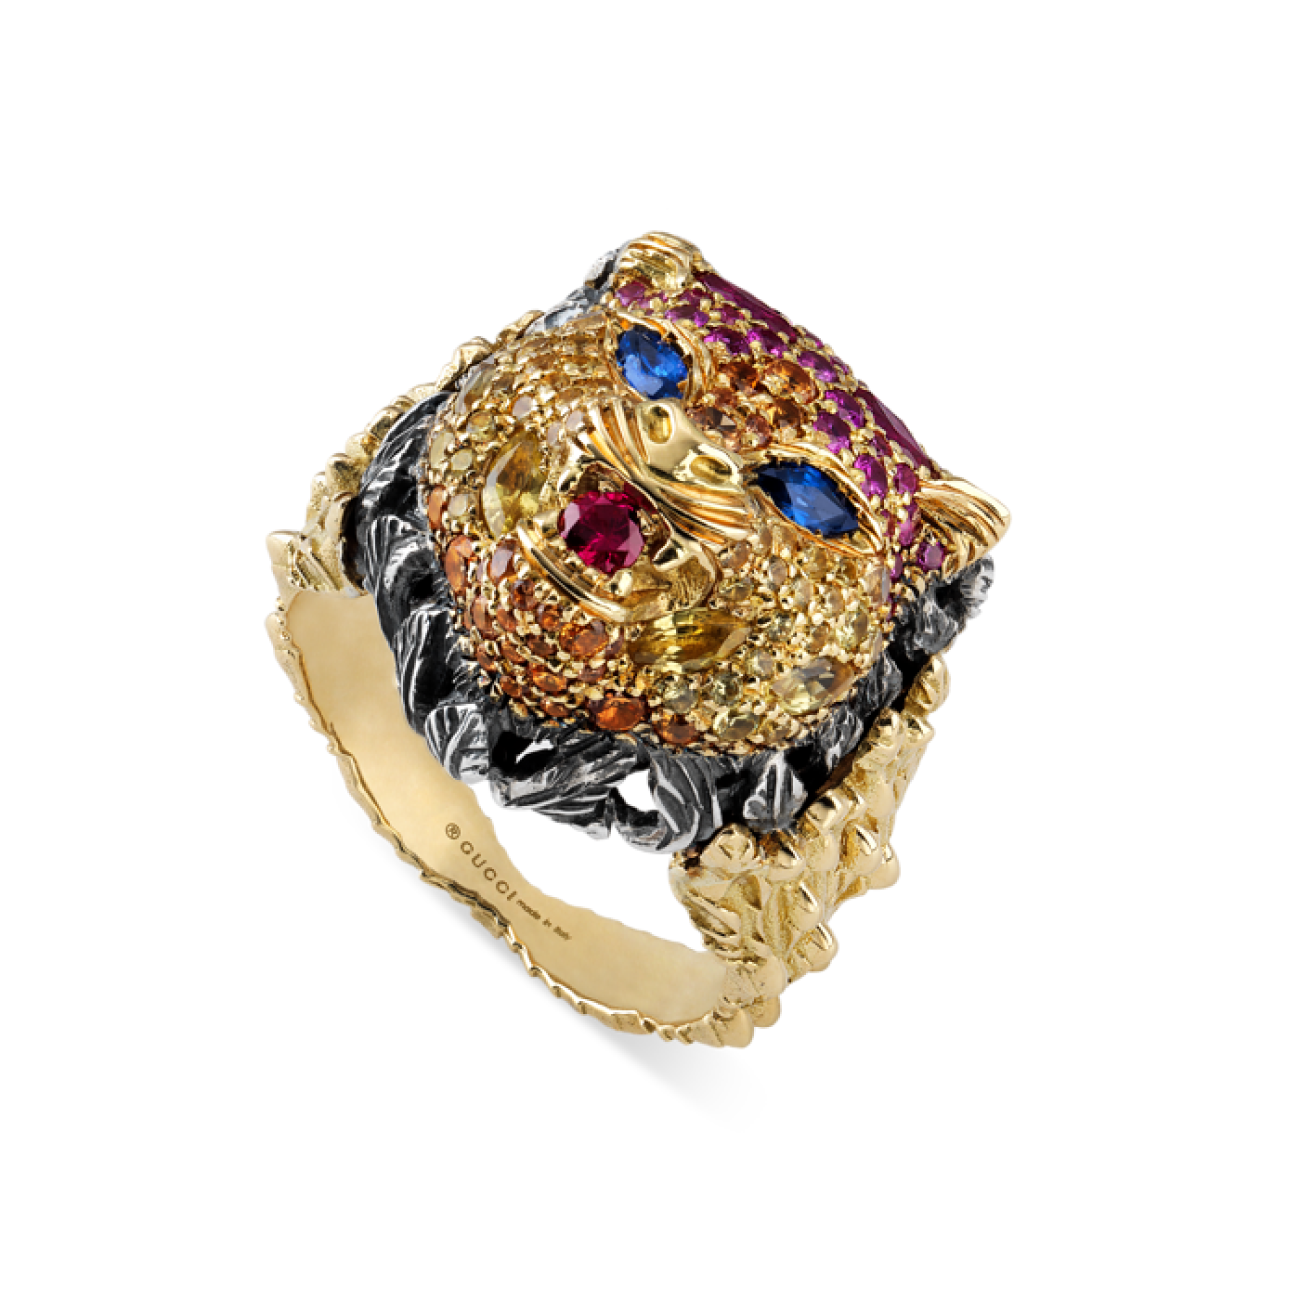 Gucci Jewelry - Lion sapphies and rubies ring | Manfredi Jewels